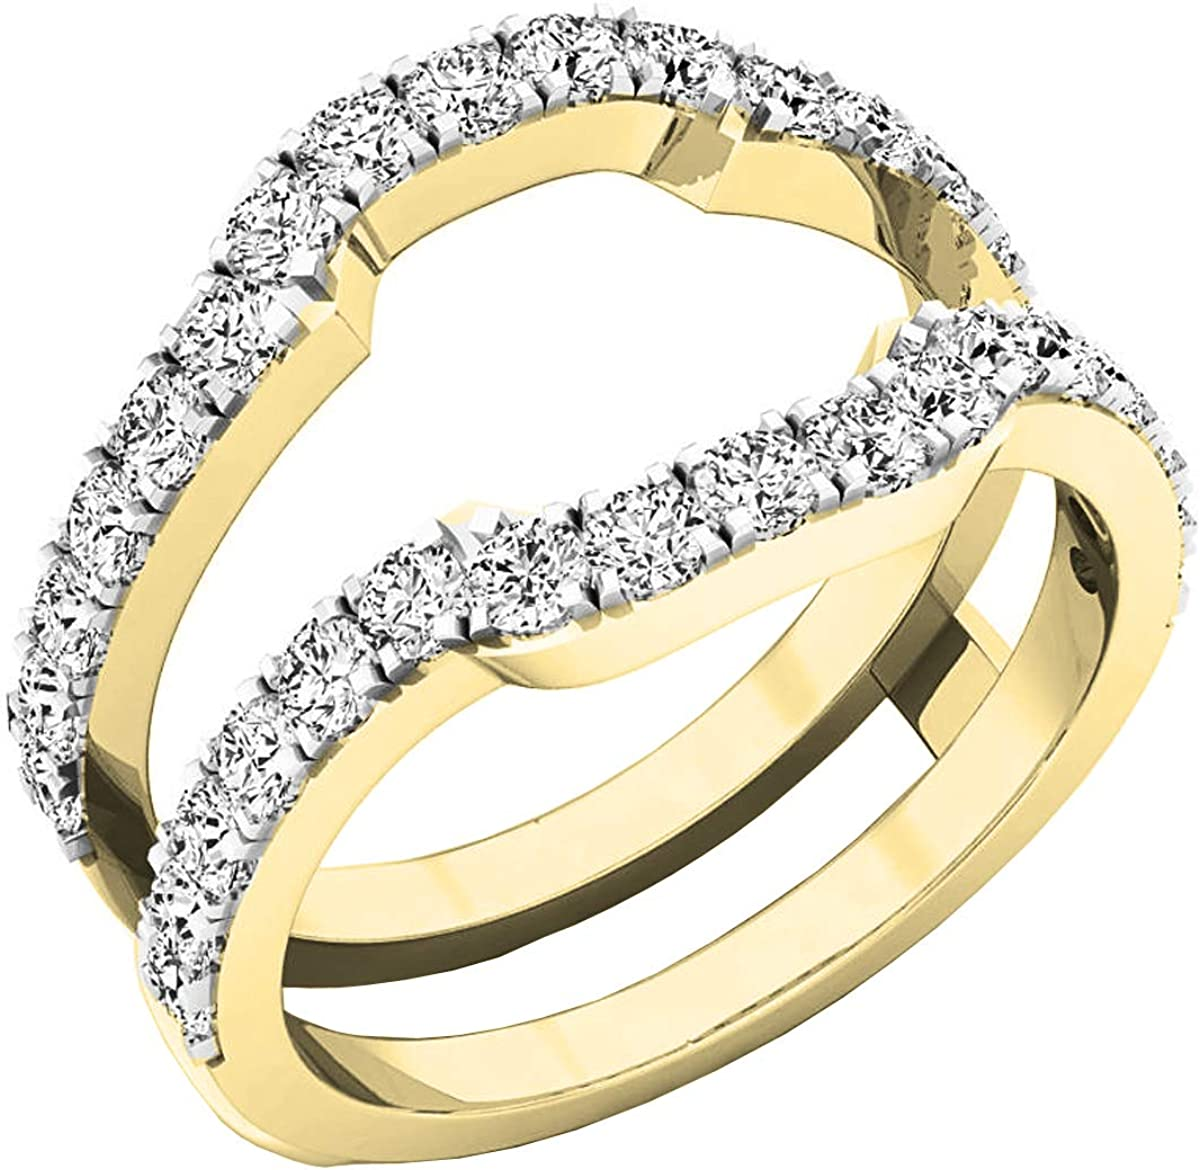 OFFicial mail order Dazzlingrock Collection Diamond Wedding Genuine Free Shipping Ring Guard Enhancer Band